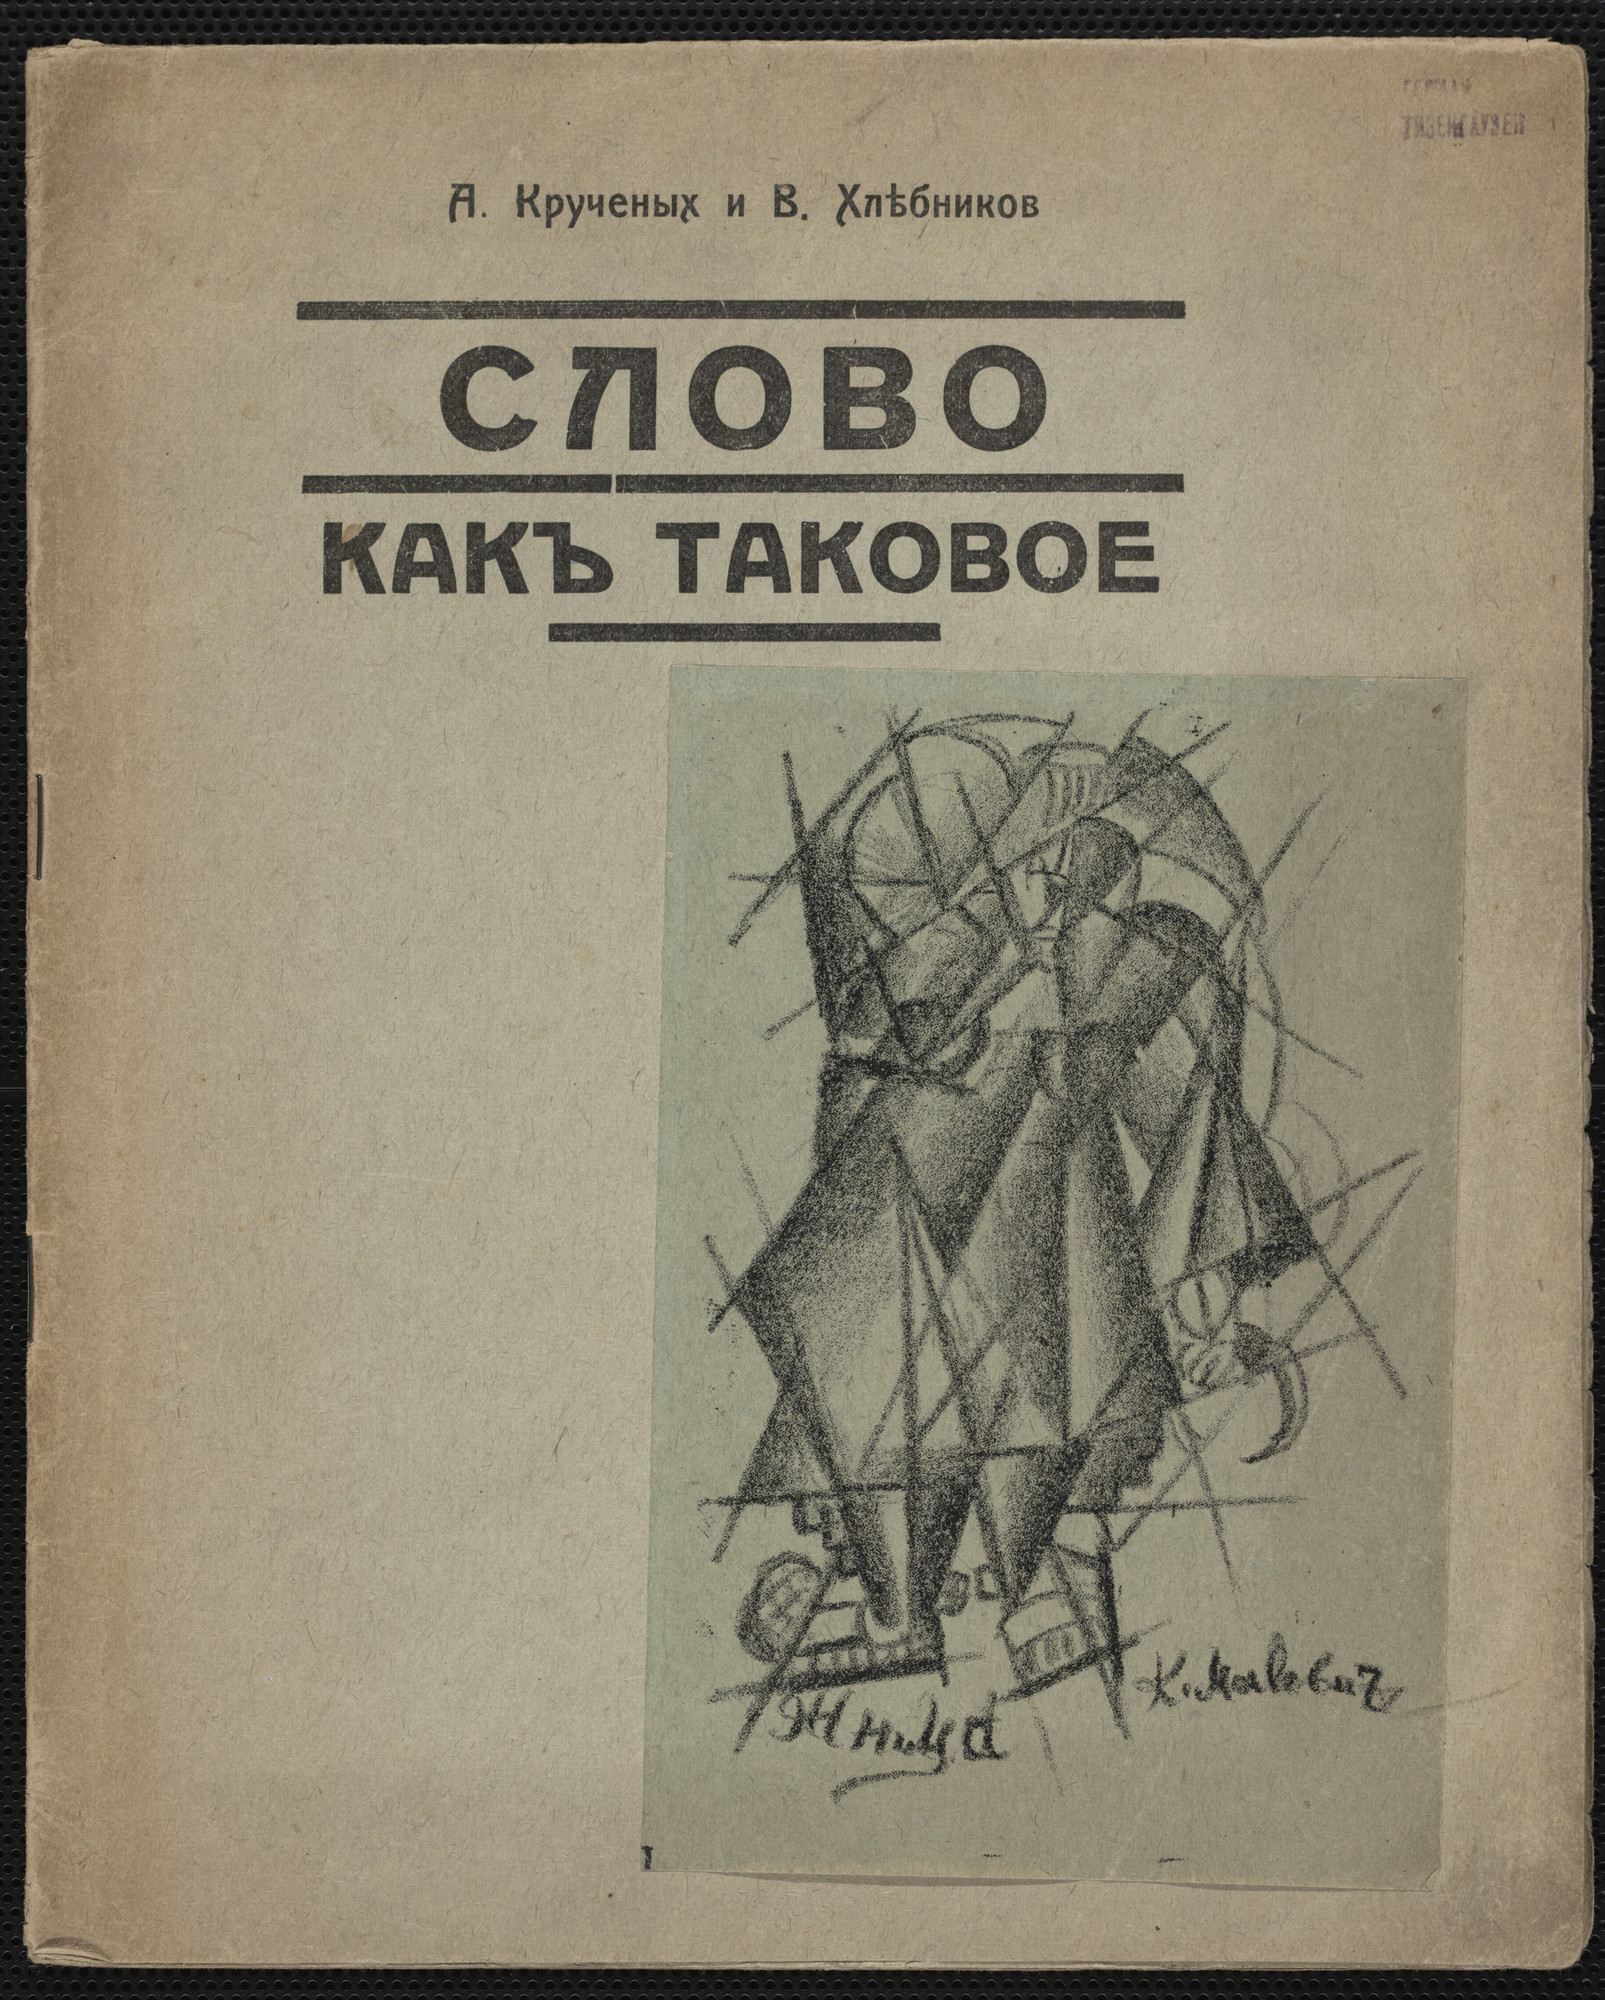 Kazimir Malevich, Olga Rozanova. Slovo kak takovoe (The Word as Such). 1913